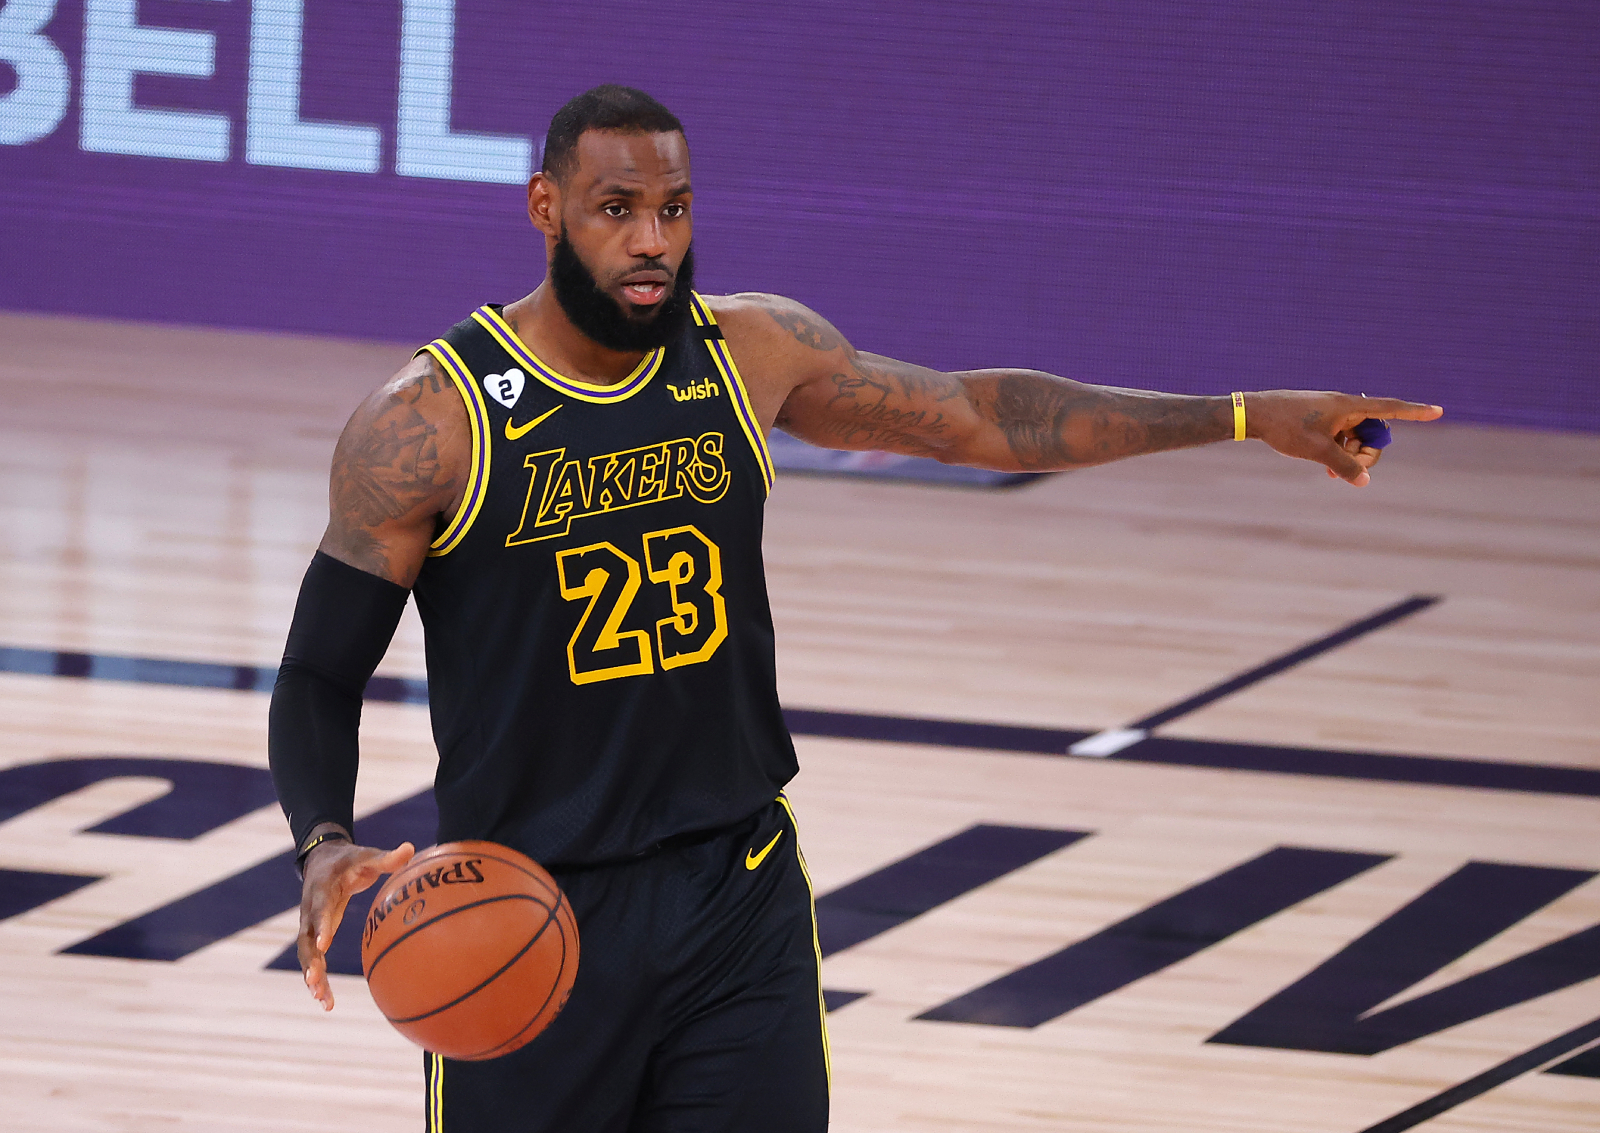 LeBron James has always dealt with critics. Now, as he and the Lakers try to get to the Finals, he has a brutally honest message about them.